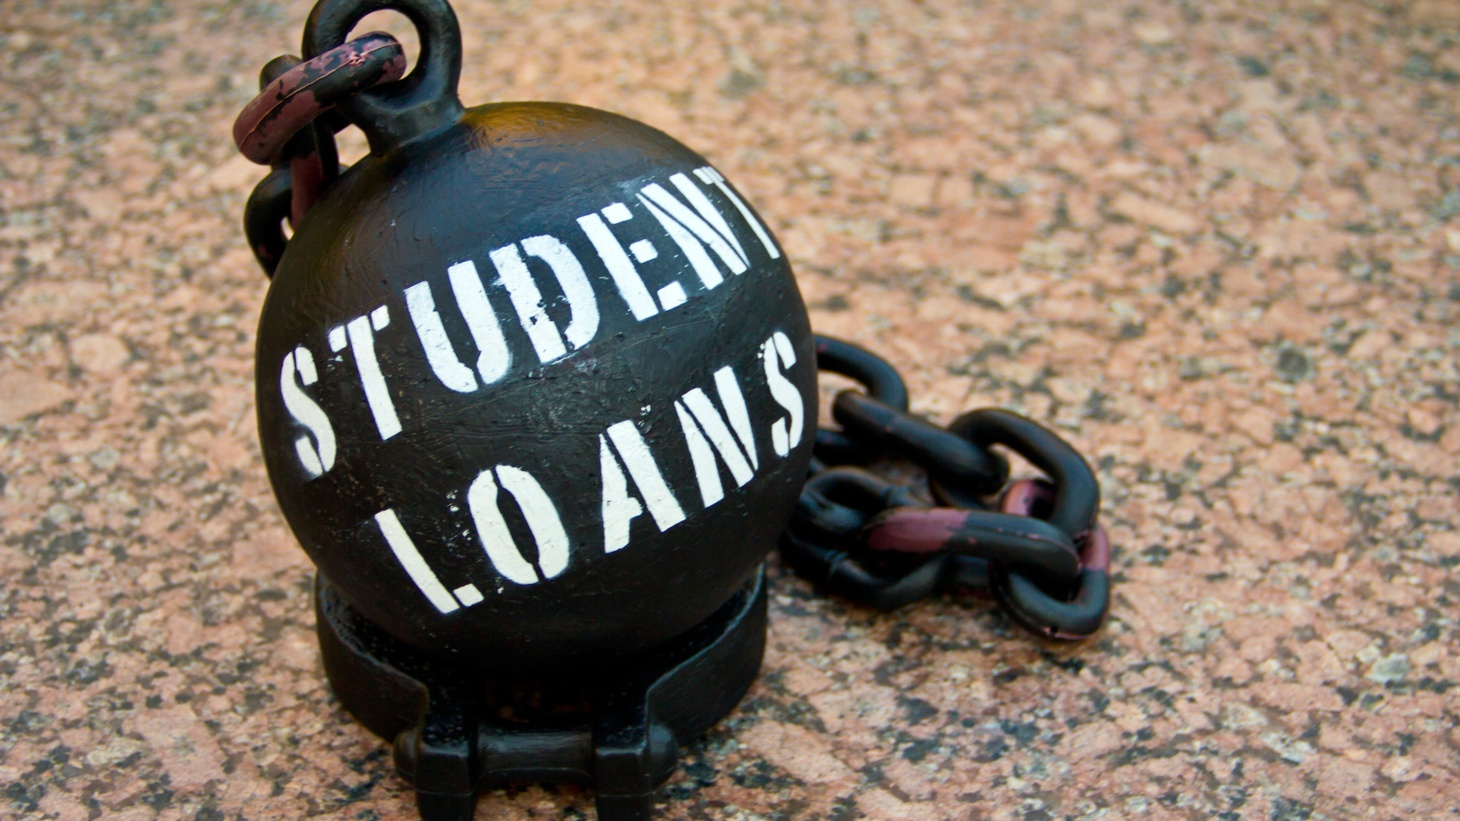 A three year college degree is just one proposal to rethink the cost of college education. With the average graduate carrying $30 thousand in debt and middle class parents depleting their retirement funds to pay for higher education, has the time come for radical reform?